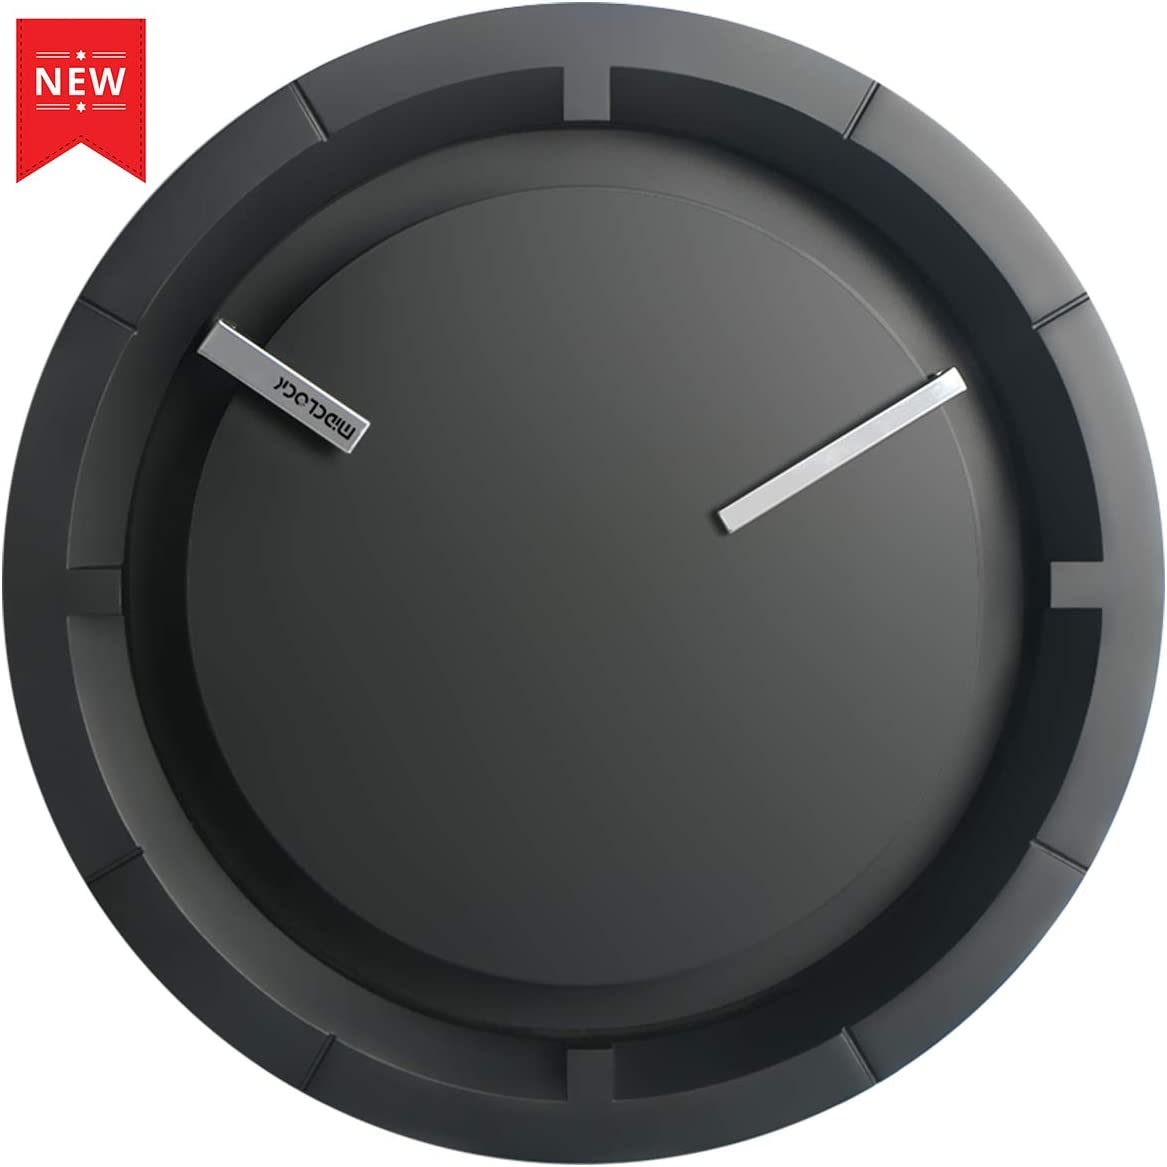 MIDCLOCK Wall Clock, New Modern Black Analog Clock, Silent Non-Ticking – 12 Inch Quality Quartz Battery Operated Round, Decorative Clock for Living Room Bedroom Office Home School Gift Clock Black